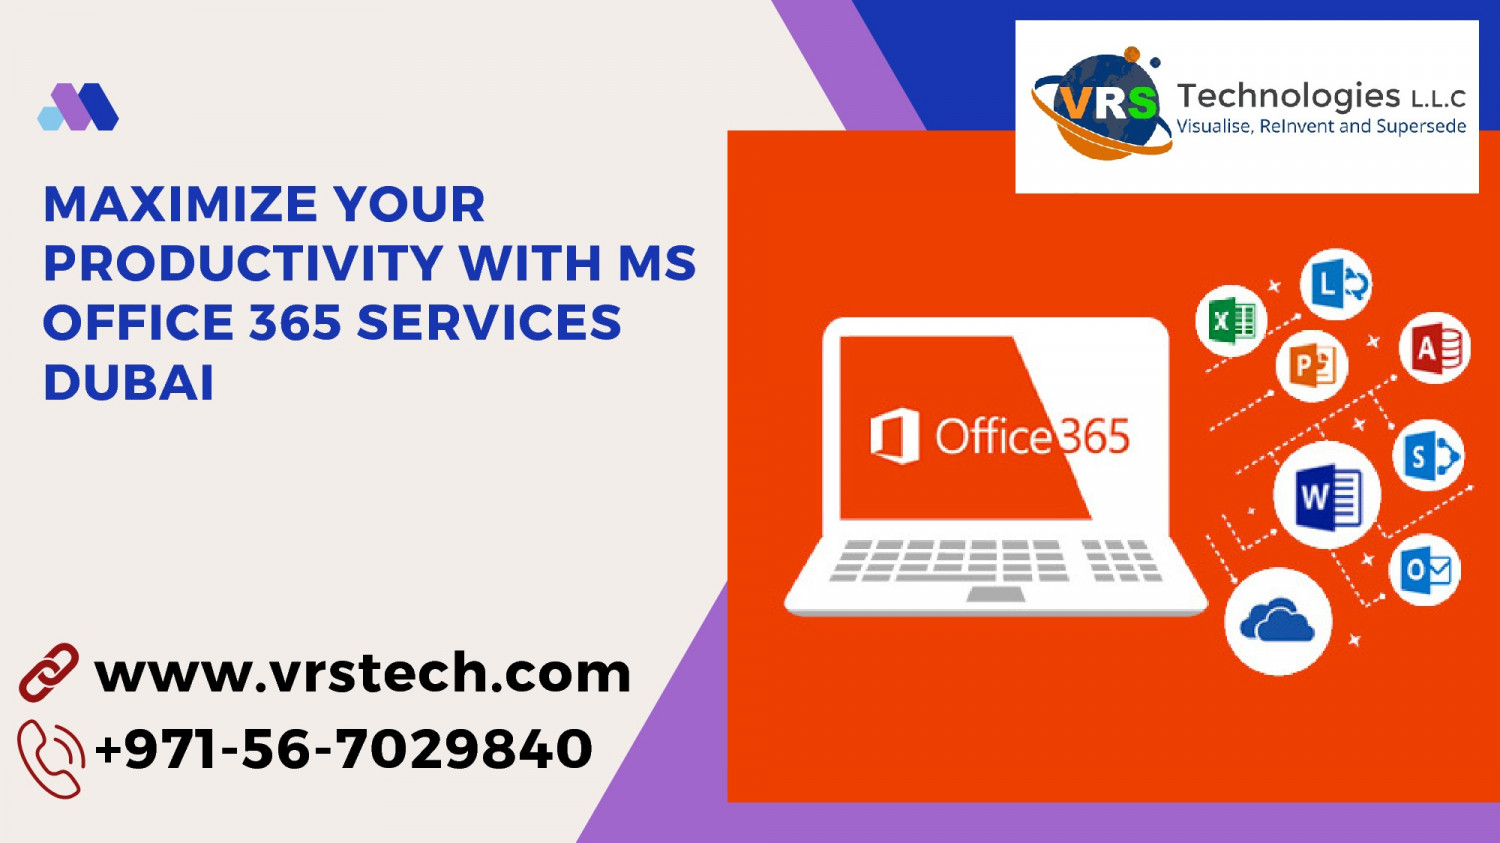 Maximize your Productive with MS Office 365 Services in Dubai Infographic